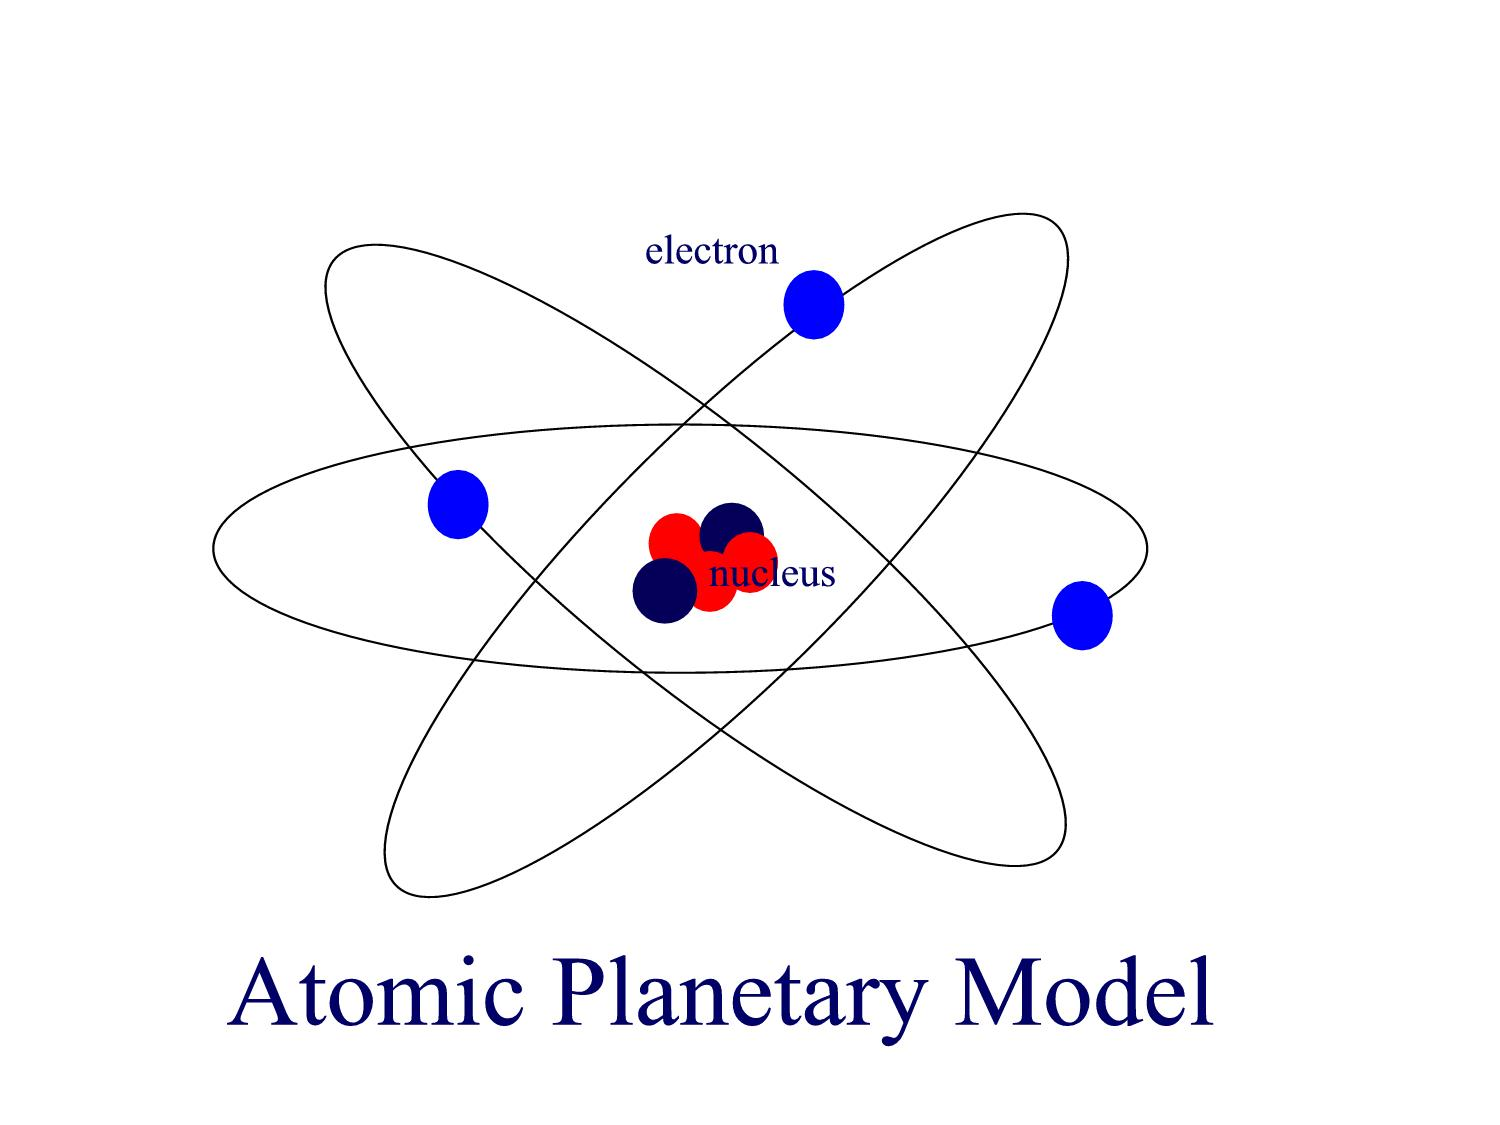 Helium Bohr Model Auto Electrical Wiring Diagram Wikipremed Mcat Course Image Archive Circuit Symbol For An Inductor Solar System Atom Page 2